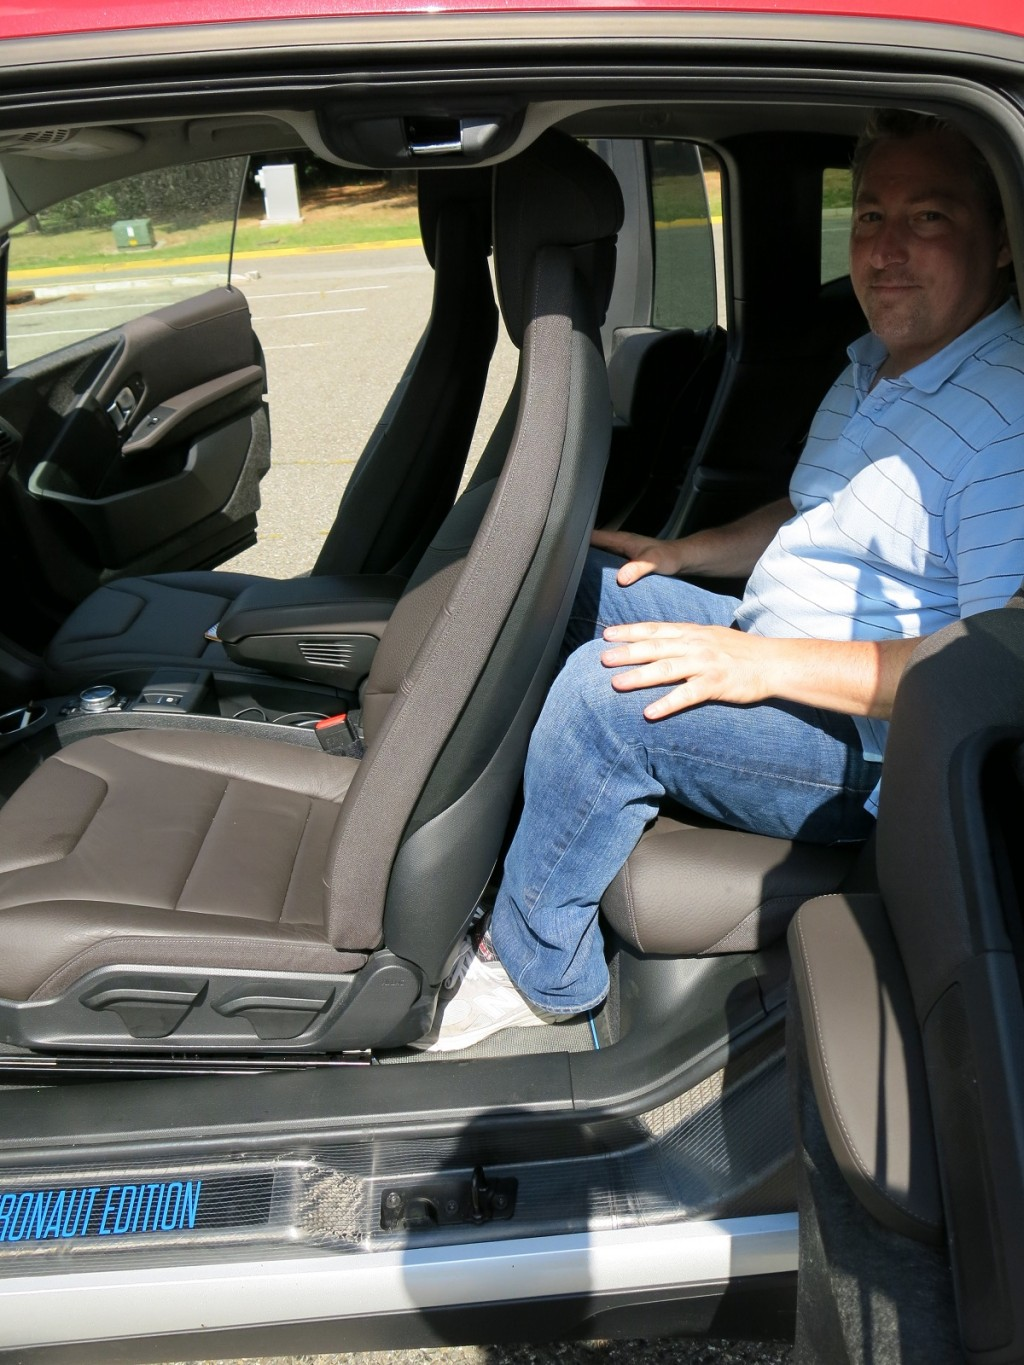 image 2014 bmw i3 rex vs chevrolet volt comparison photos david noland tom moloughney size. Black Bedroom Furniture Sets. Home Design Ideas